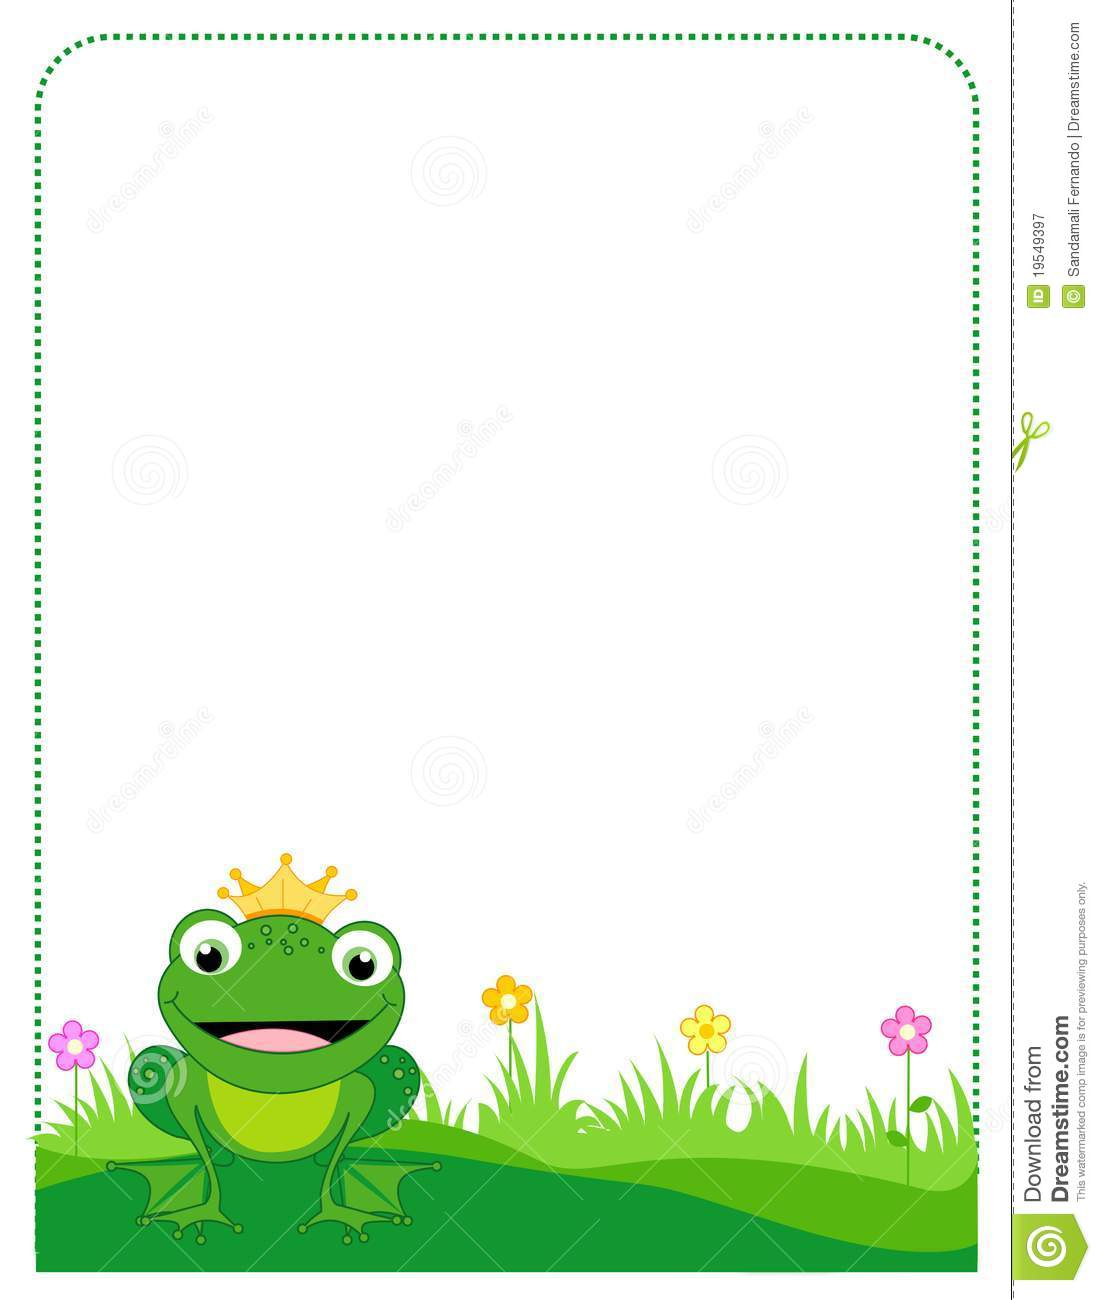 Frog Border Frame Royalty Free Stock Photography   Image  19549397